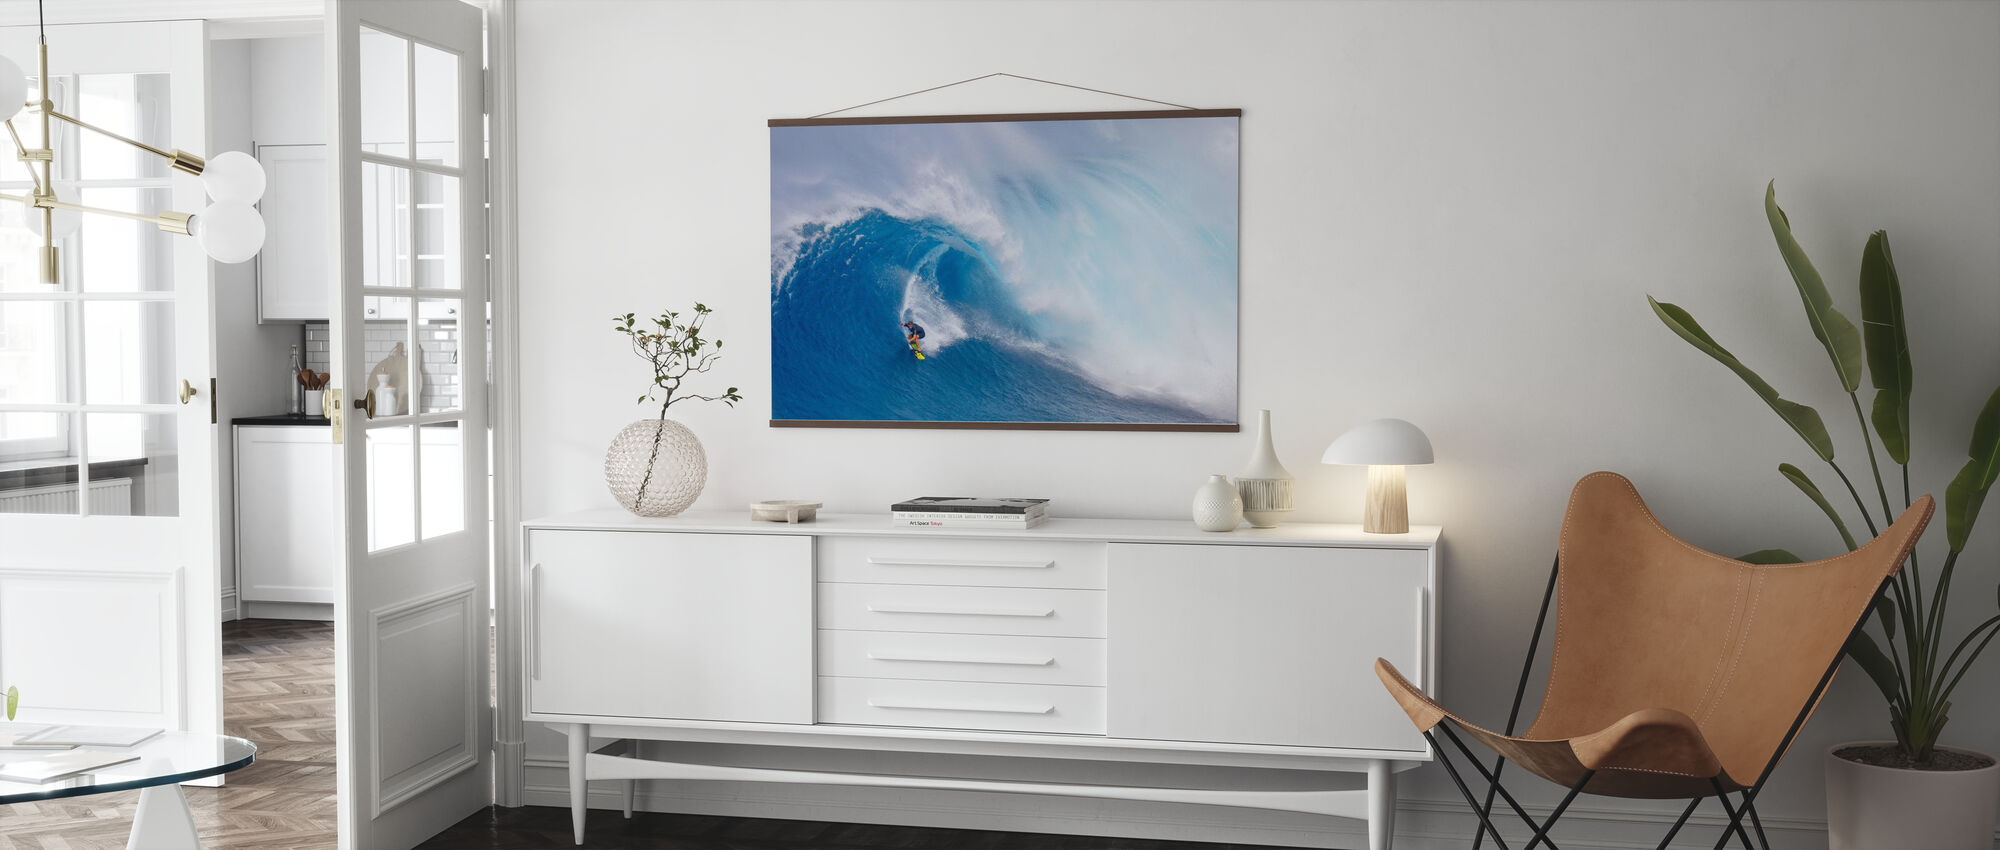 Surfing Jaws - Poster - Living Room